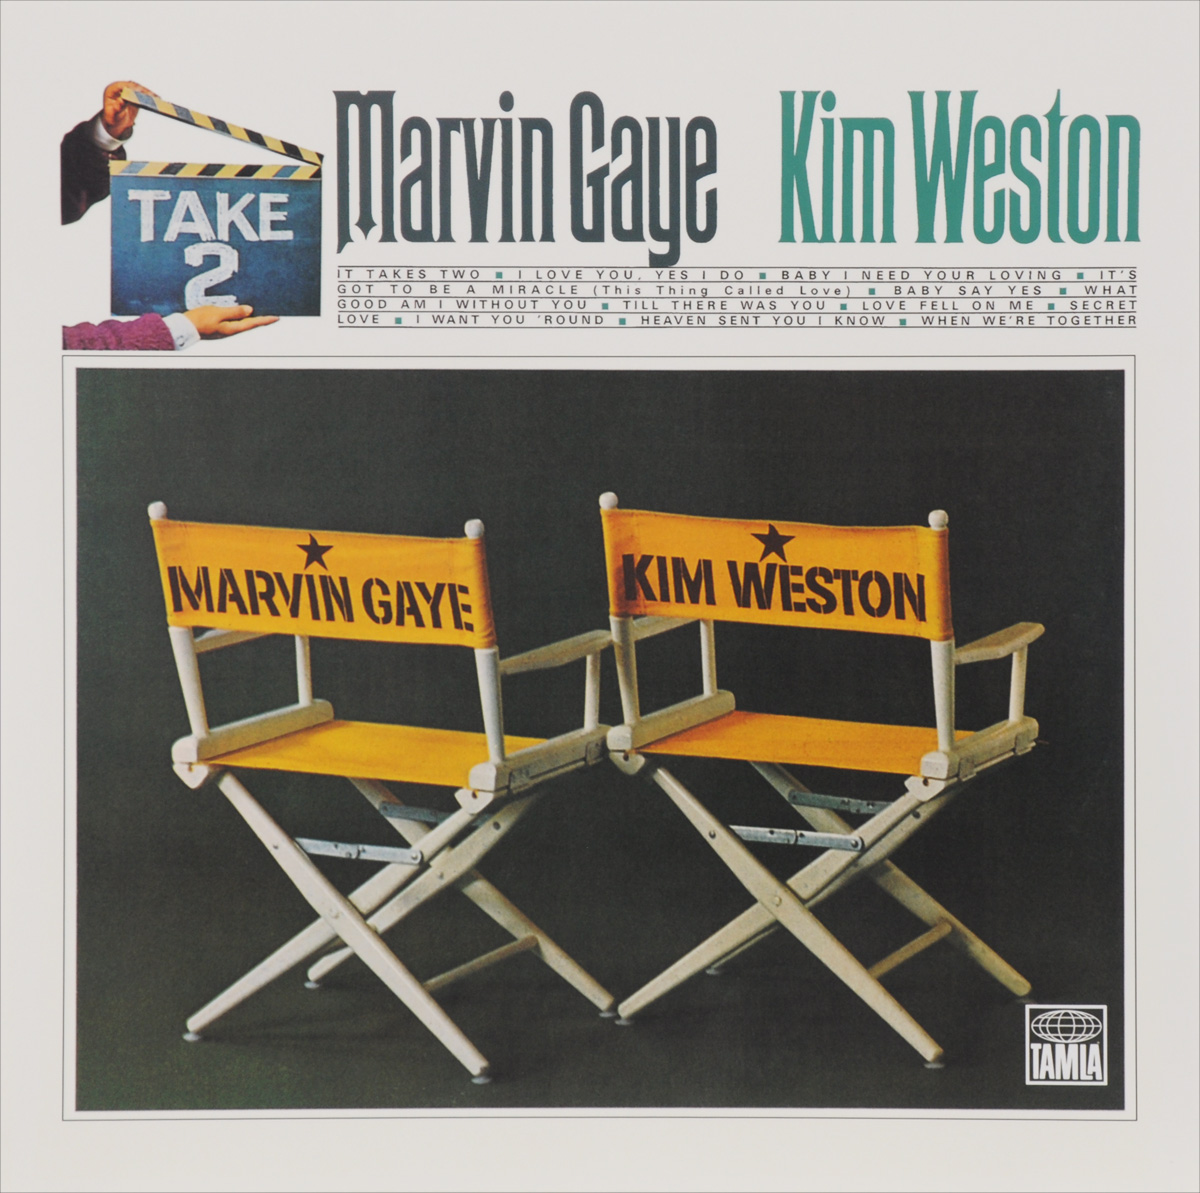 Ким Уэстон,Марвин Гэй Marvin Gaye. Kim Weston. Take Two jongwon kim intelligent manufacturing systems 1997